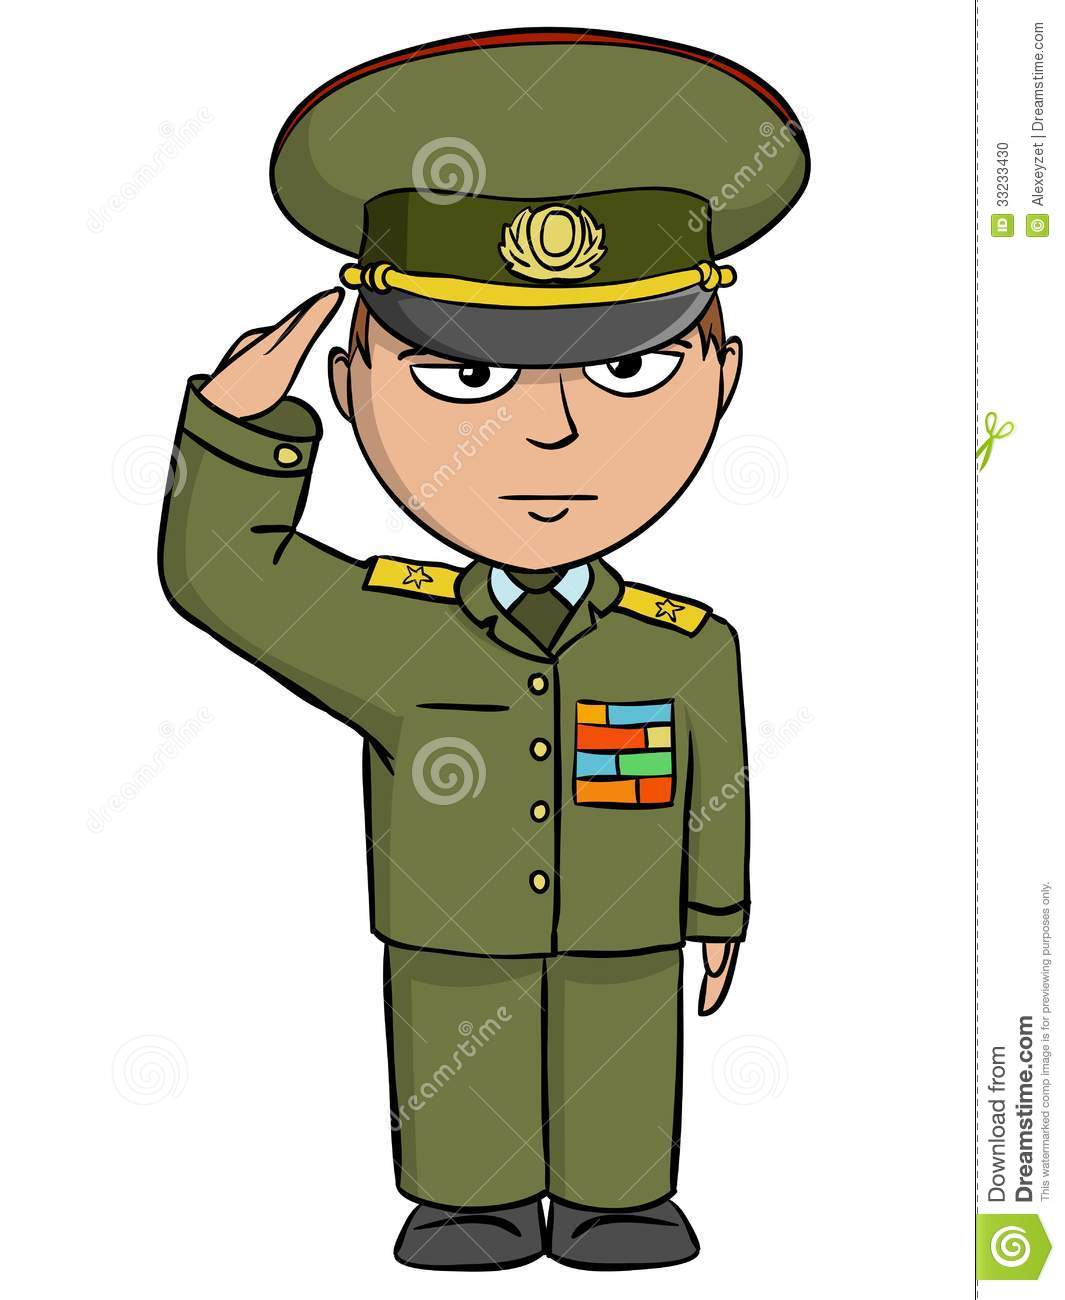 Cartoon clipart army Man military Military Animated Outfit